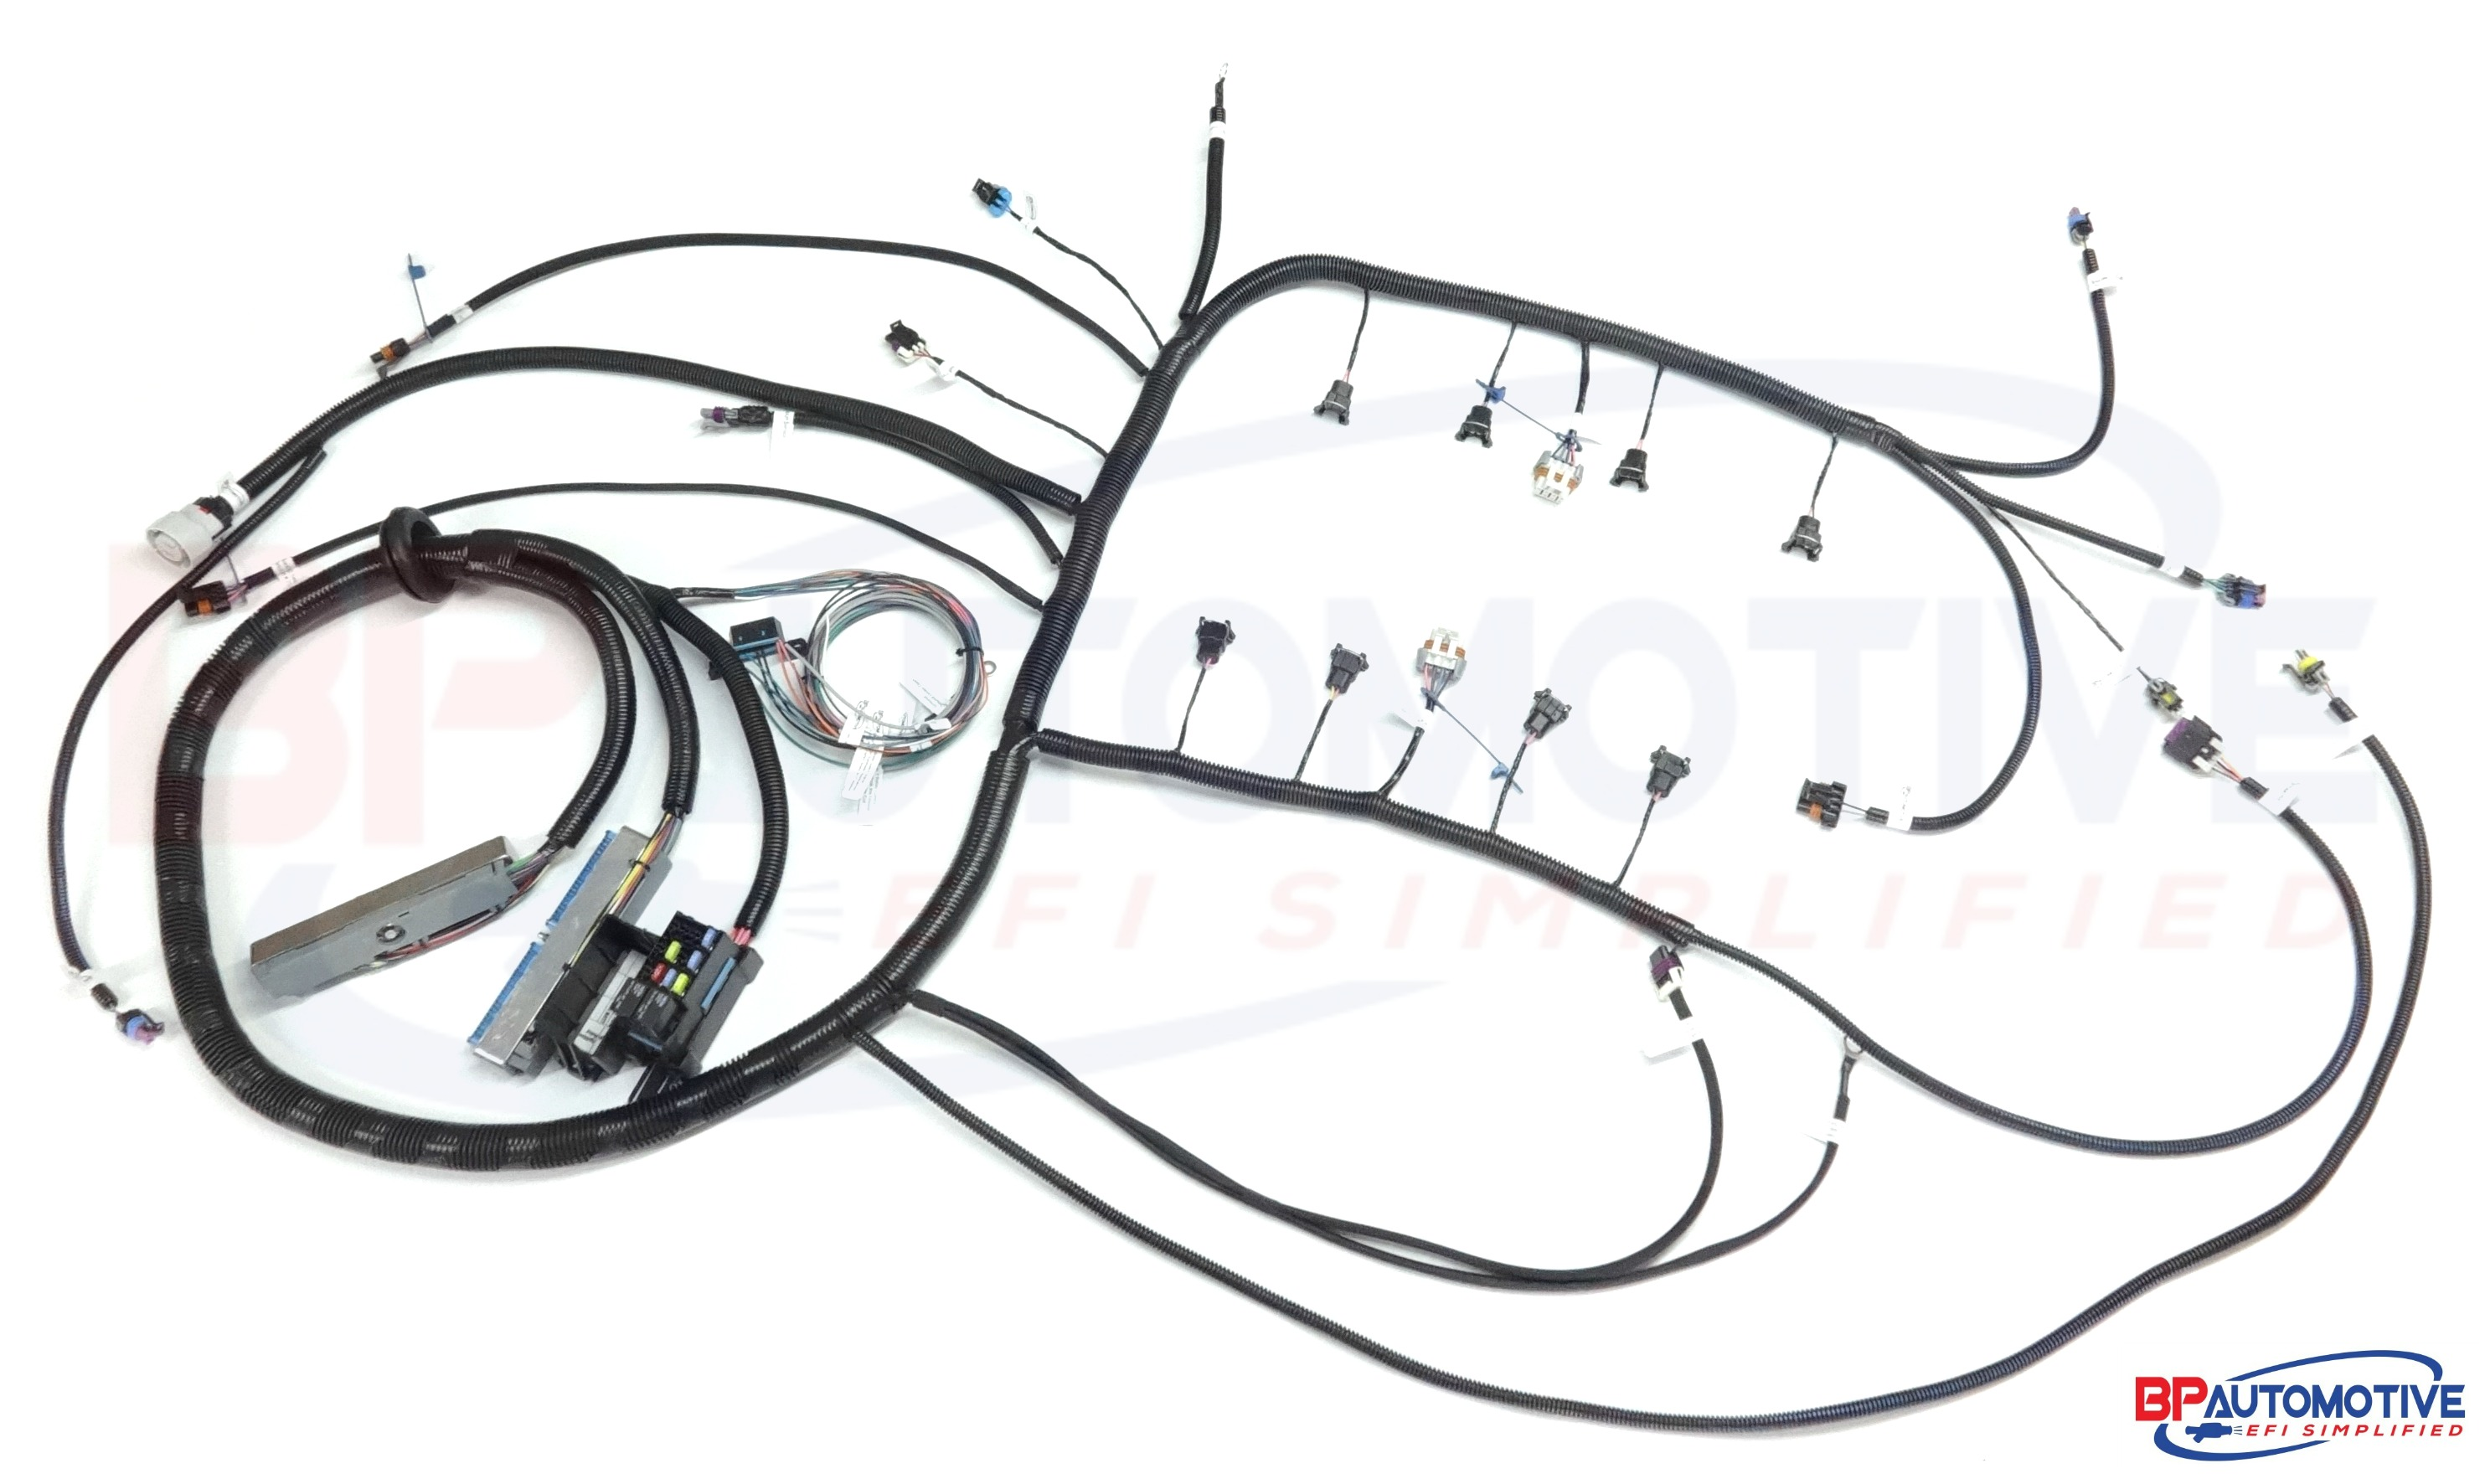 Painless Wiring Ls1 Engine Harness